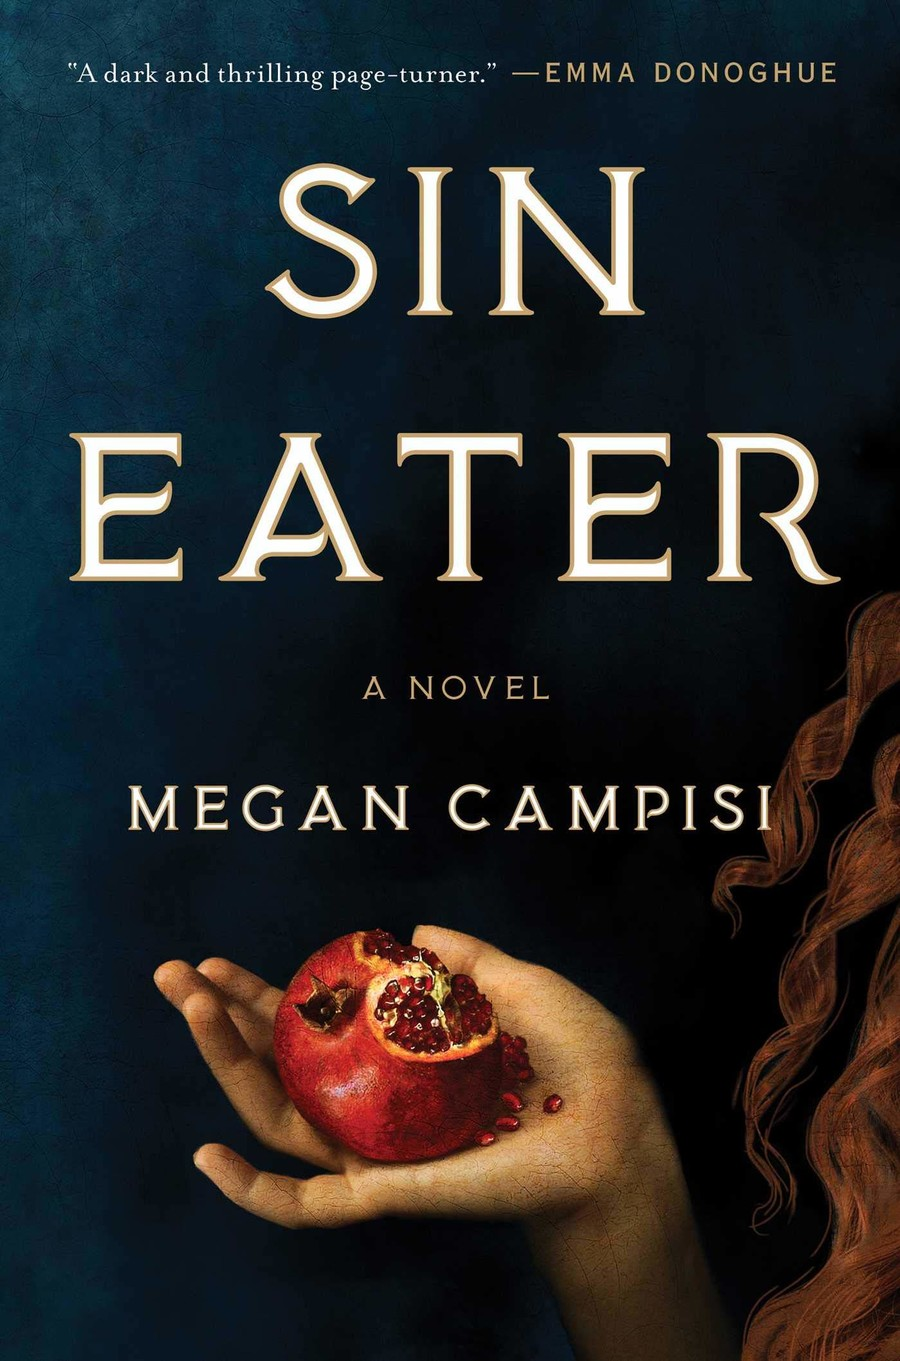 Sin Eater, a black book cover, features an illustration of a white girl's arm reaching for a rotting piece of fruit